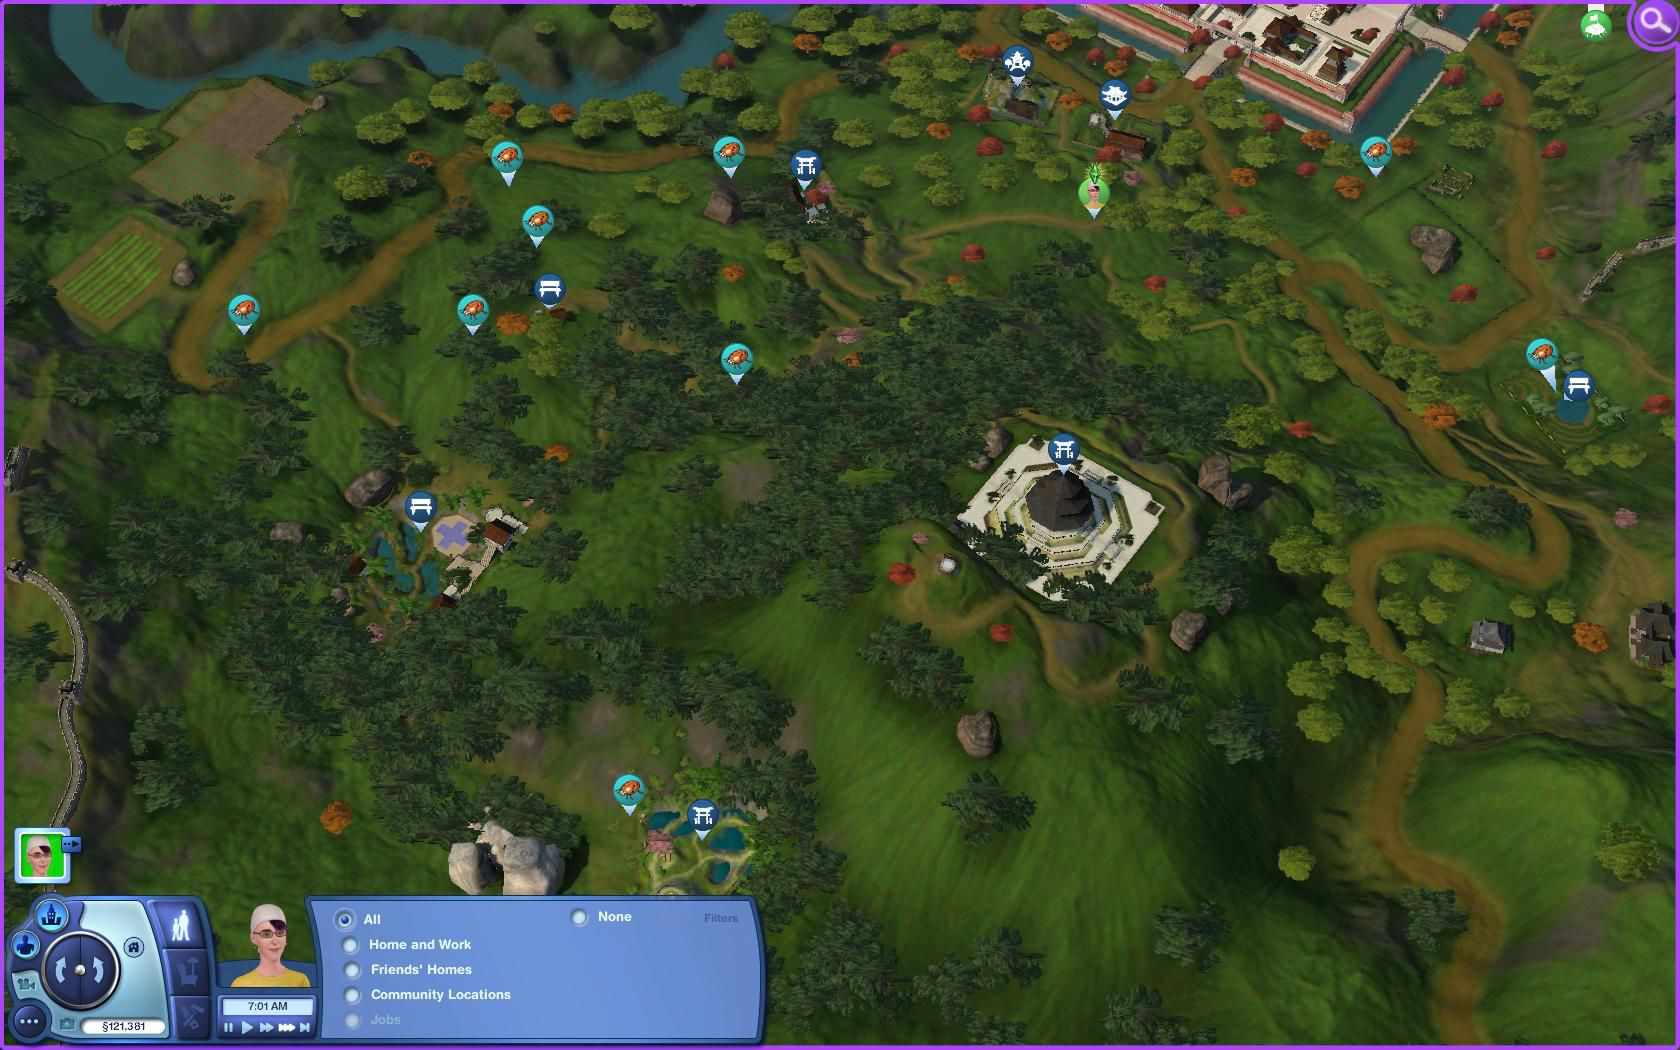 The sims 3 world adventures collecting guide maps the sims 3 collecting guide gumiabroncs Choice Image